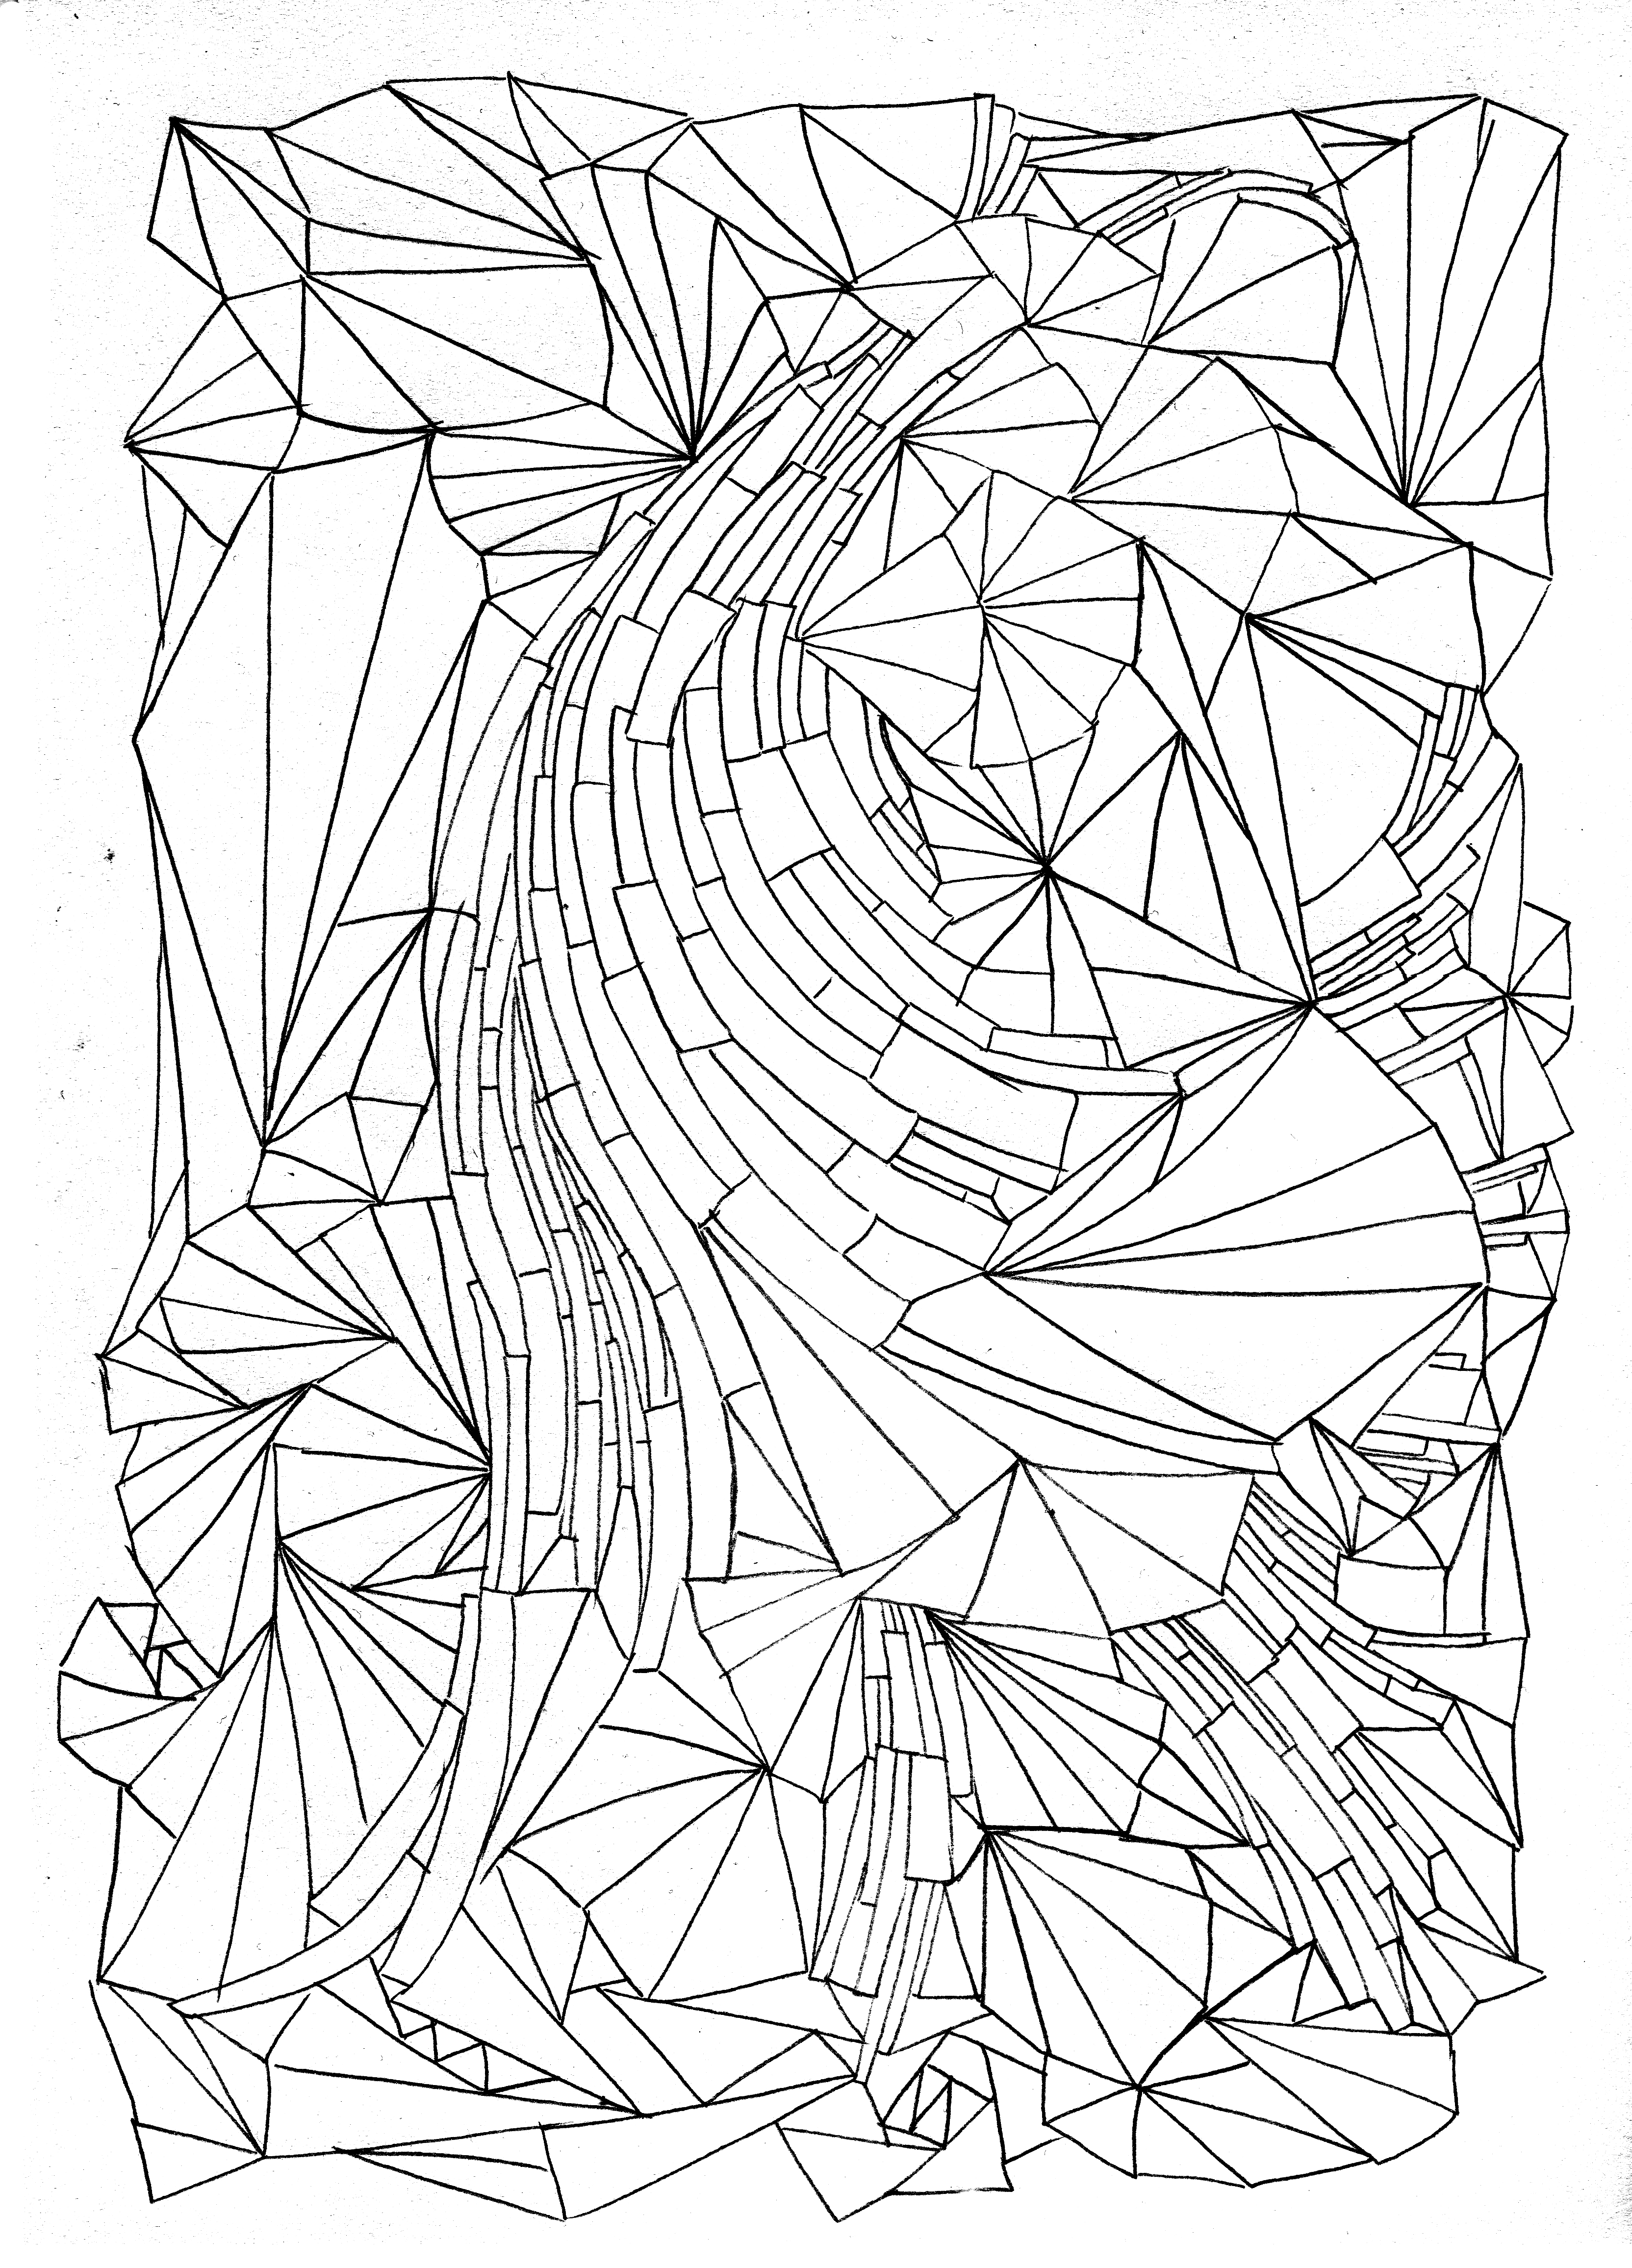 colouring patterns printables free coloring page coloring adult triangles traits anti patterns colouring printables